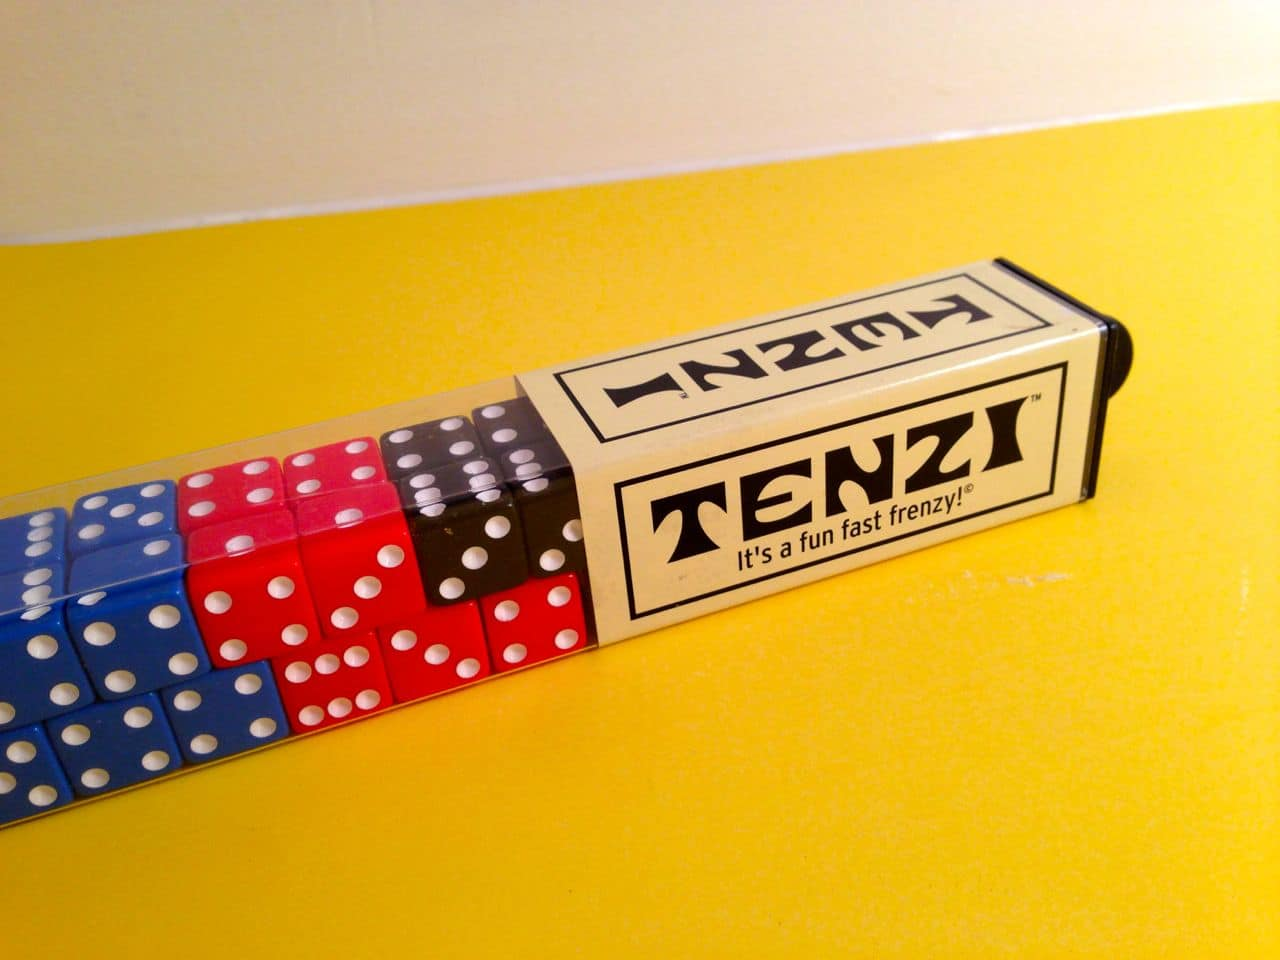 graphic about Printable Tenzi Cards called Tenzi Cube Video game - GoodStuffAtHome